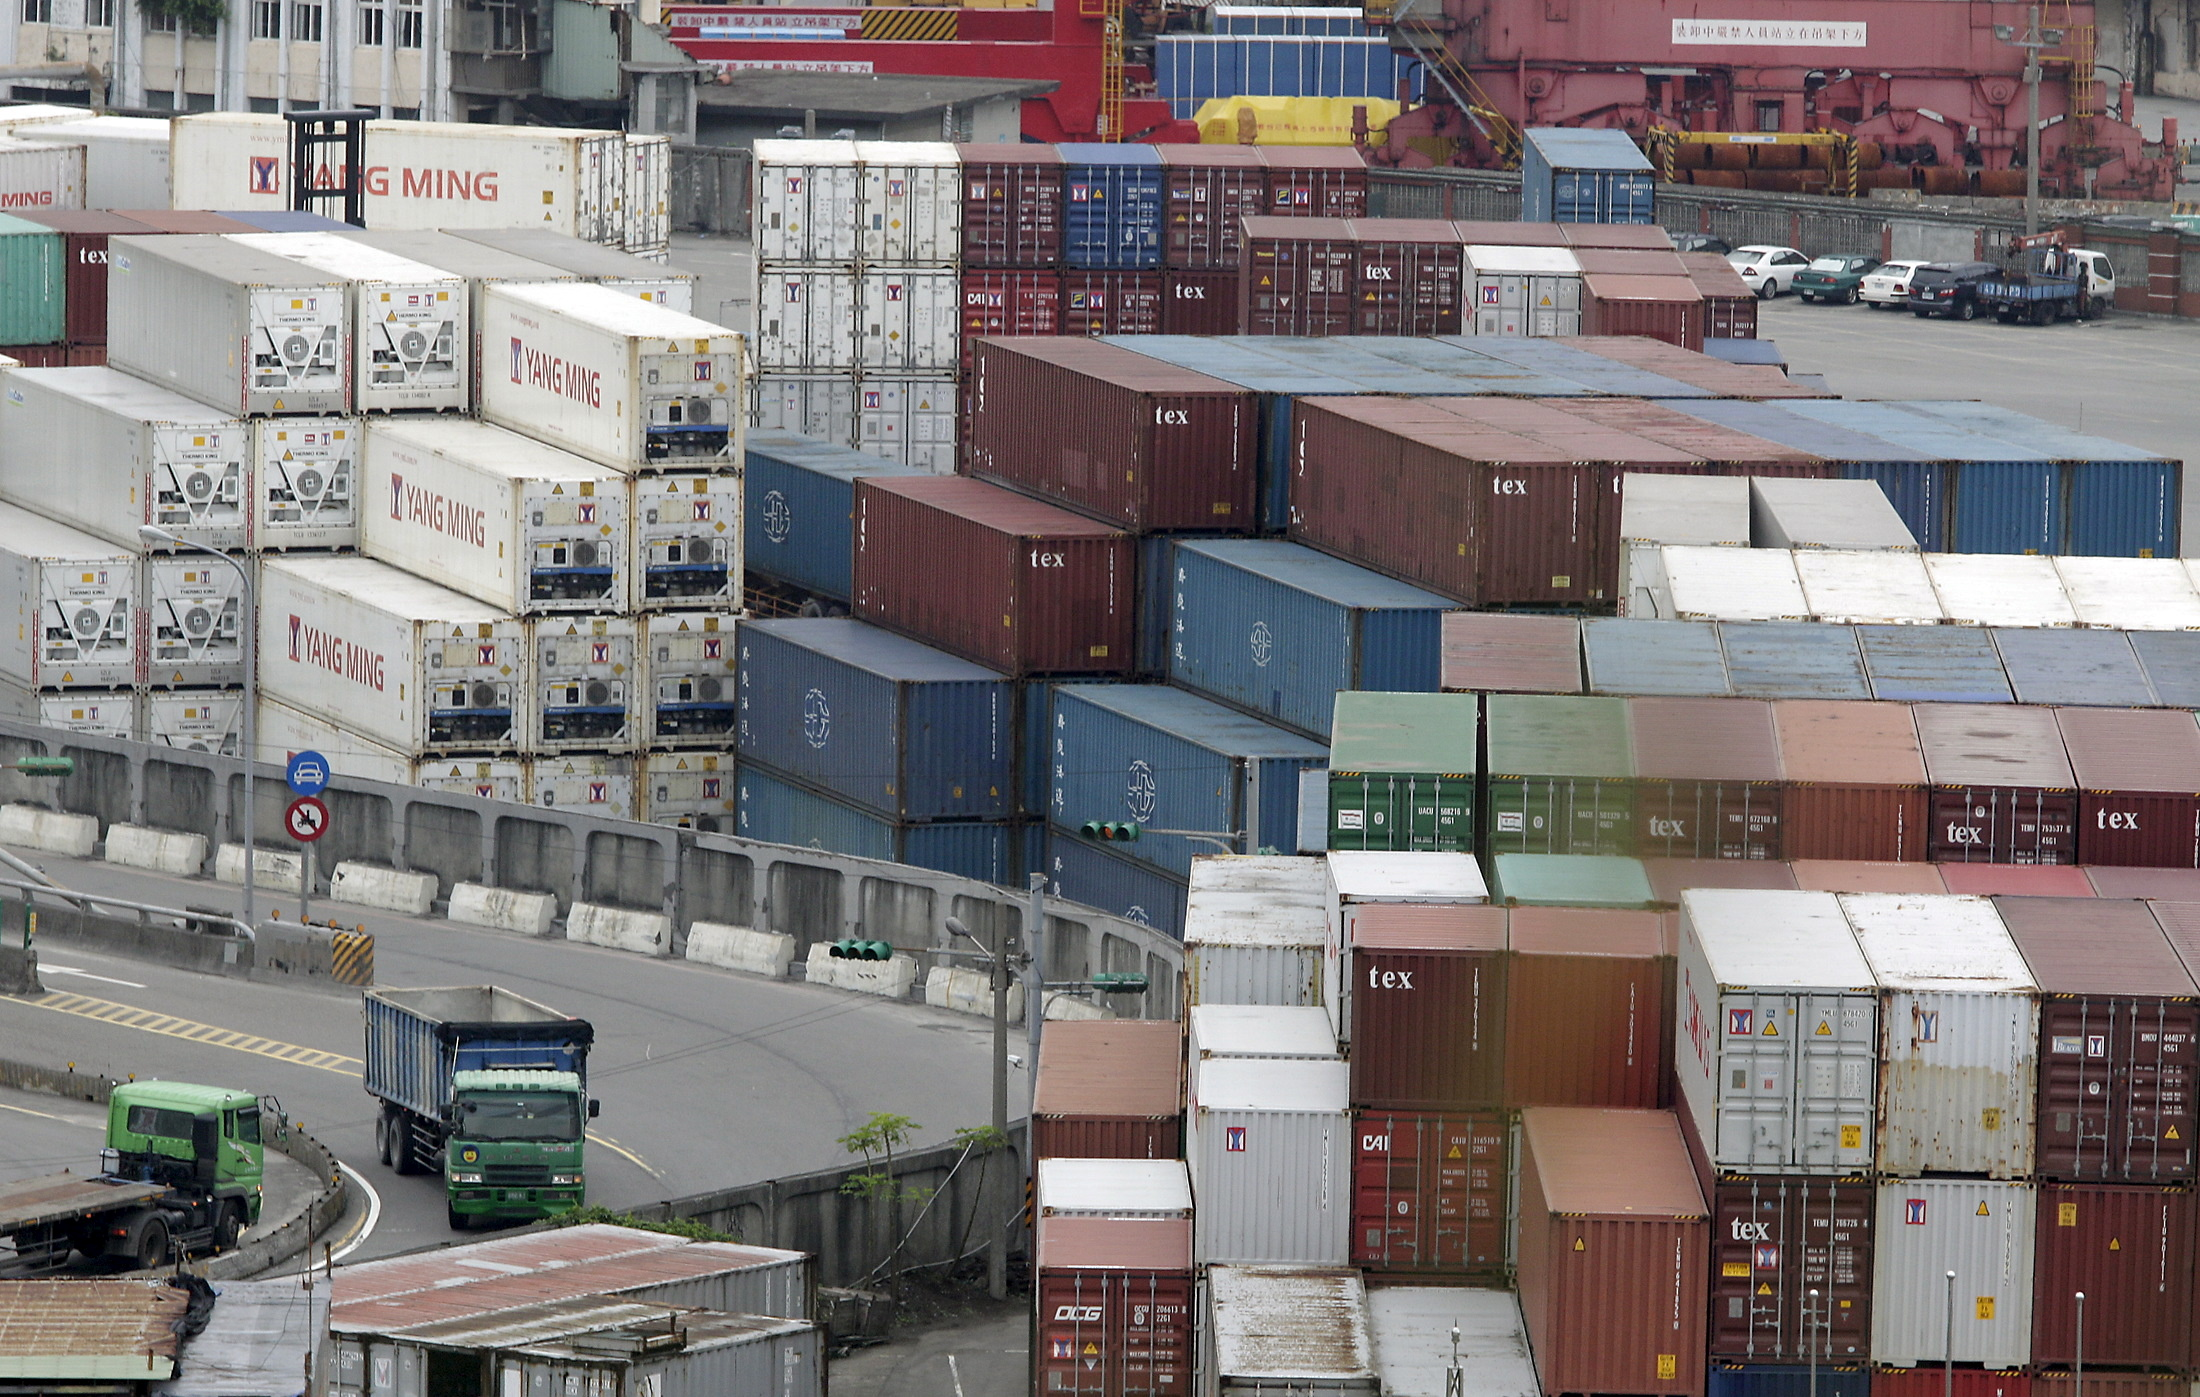 Trucks drive near containers at Keelung port, northern Taiwan, October 30, 2015. REUTERS/Pichi Chuang/File Photo